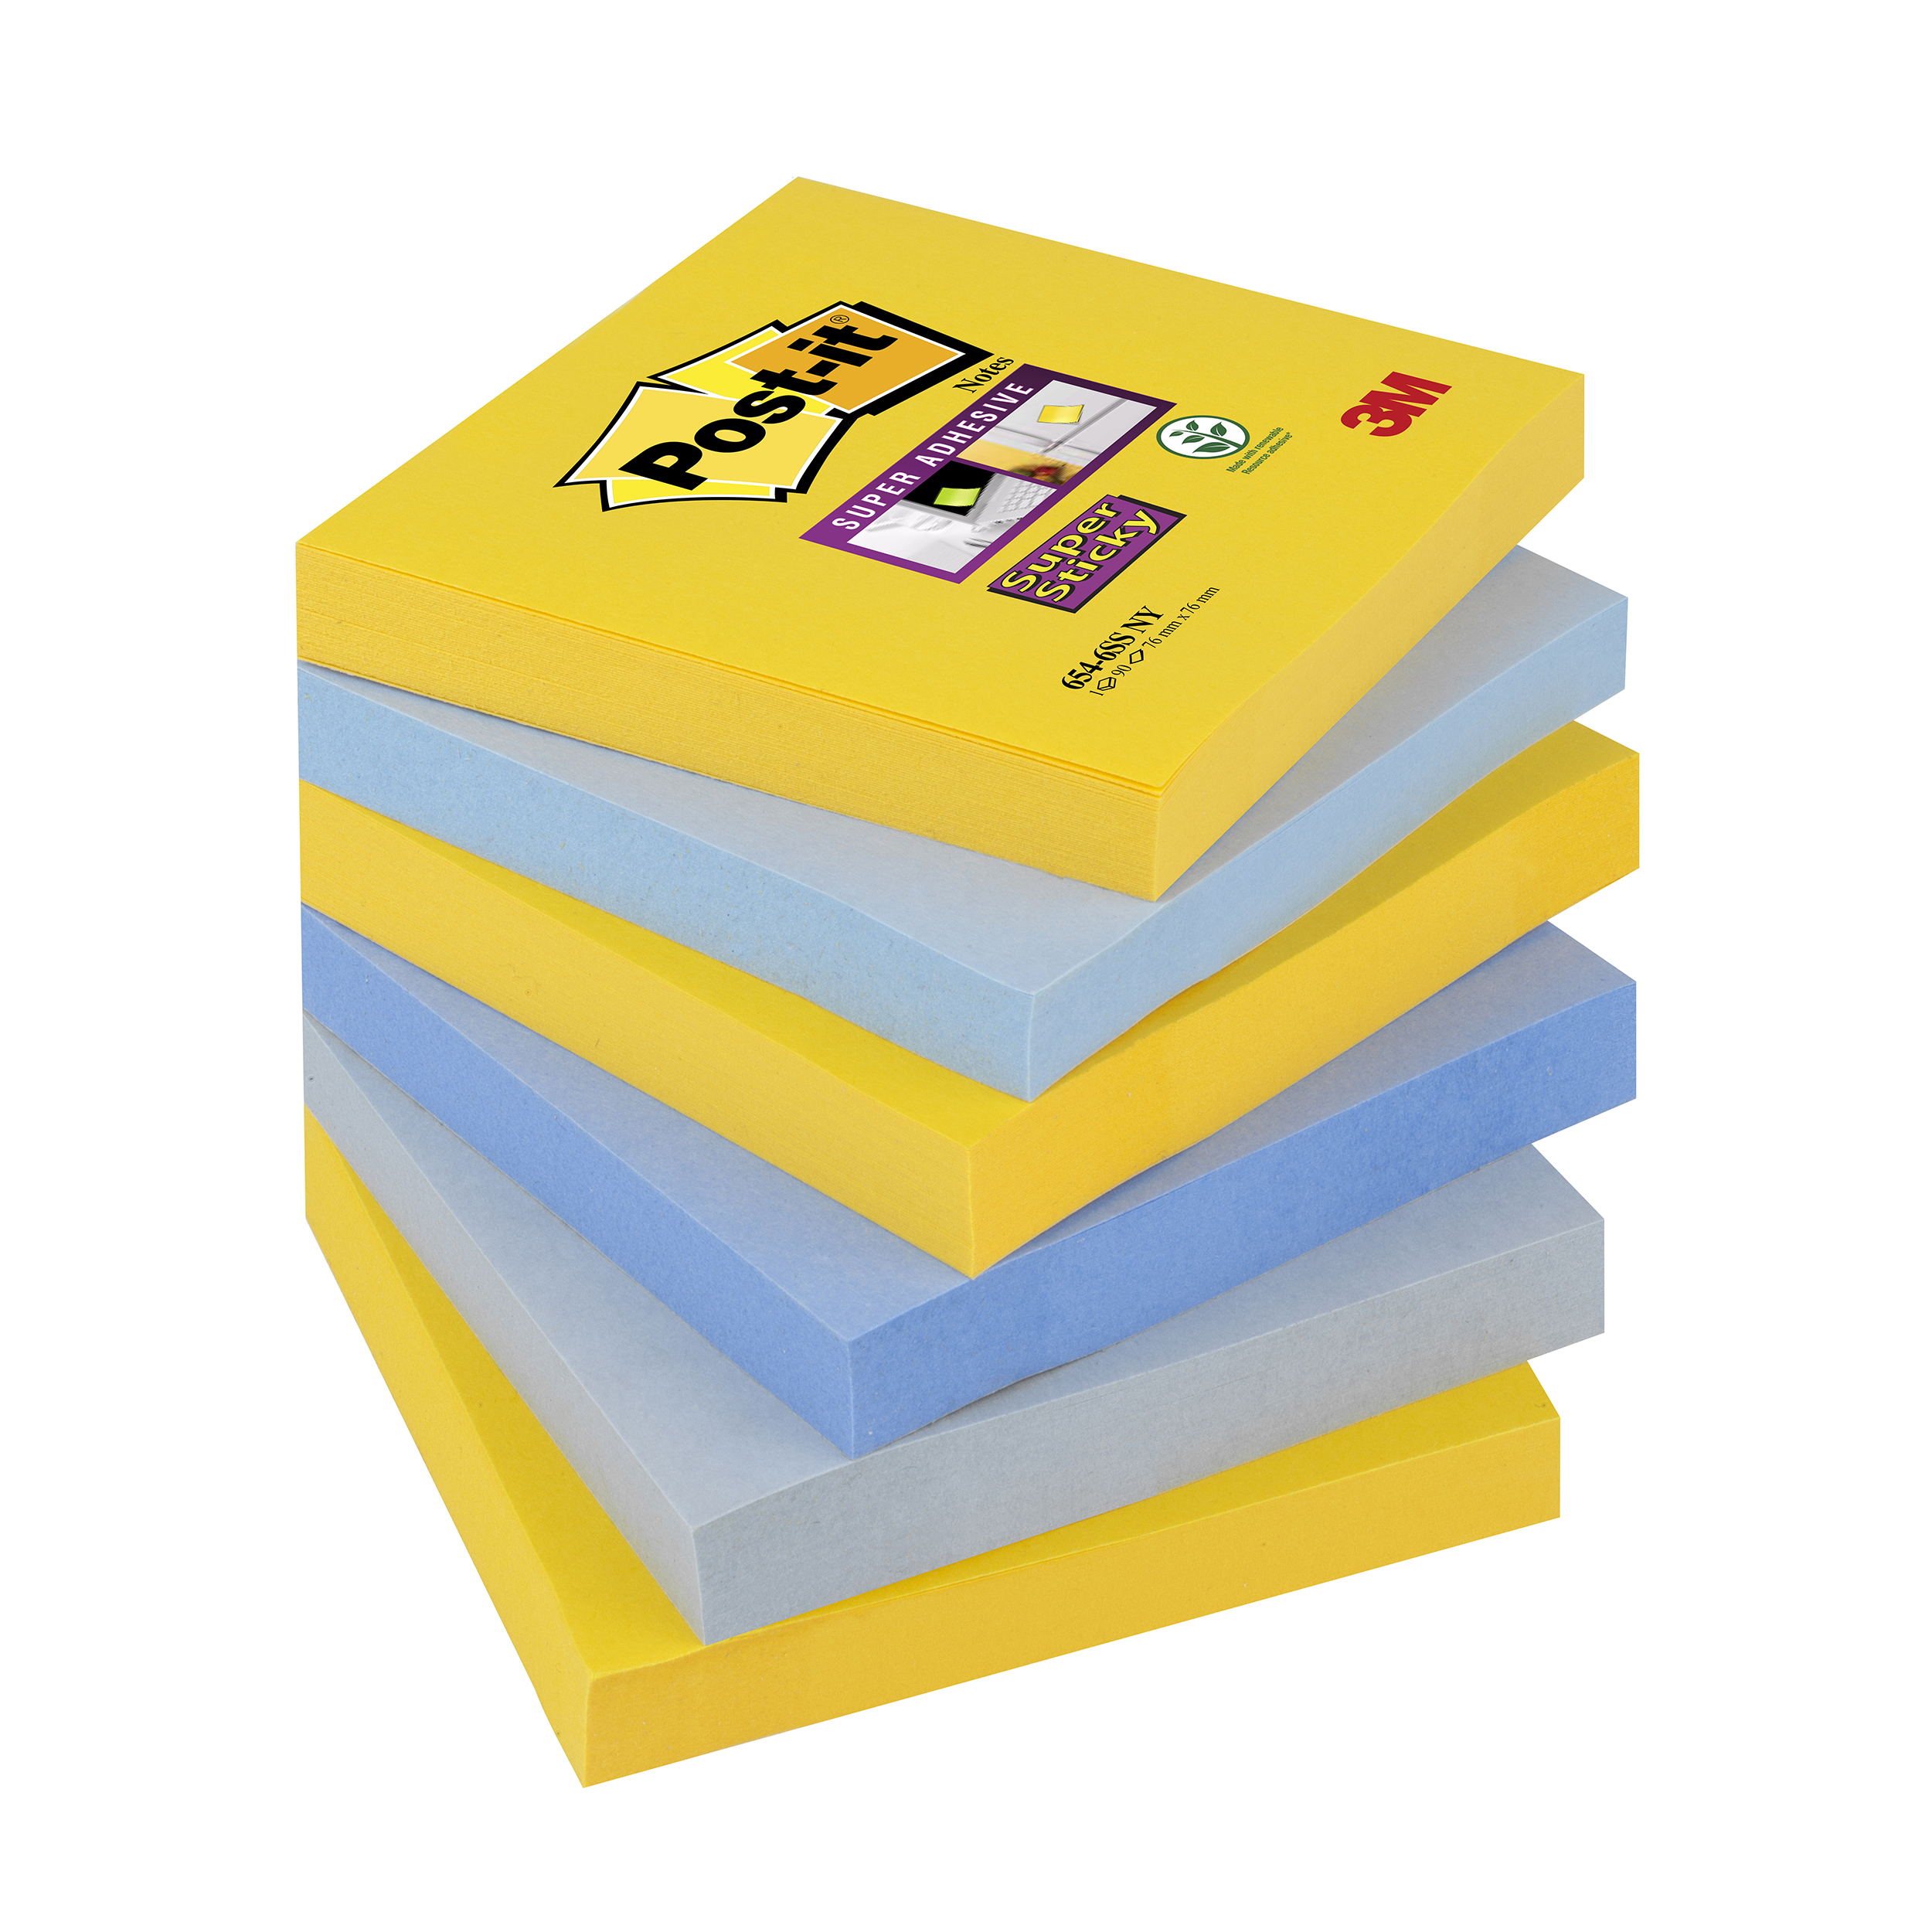 Post-it Super Sticky Nt New York 76x76mm Ref 654-6SS-NY Pack 6 [2 for 1] Jan-Mar 20